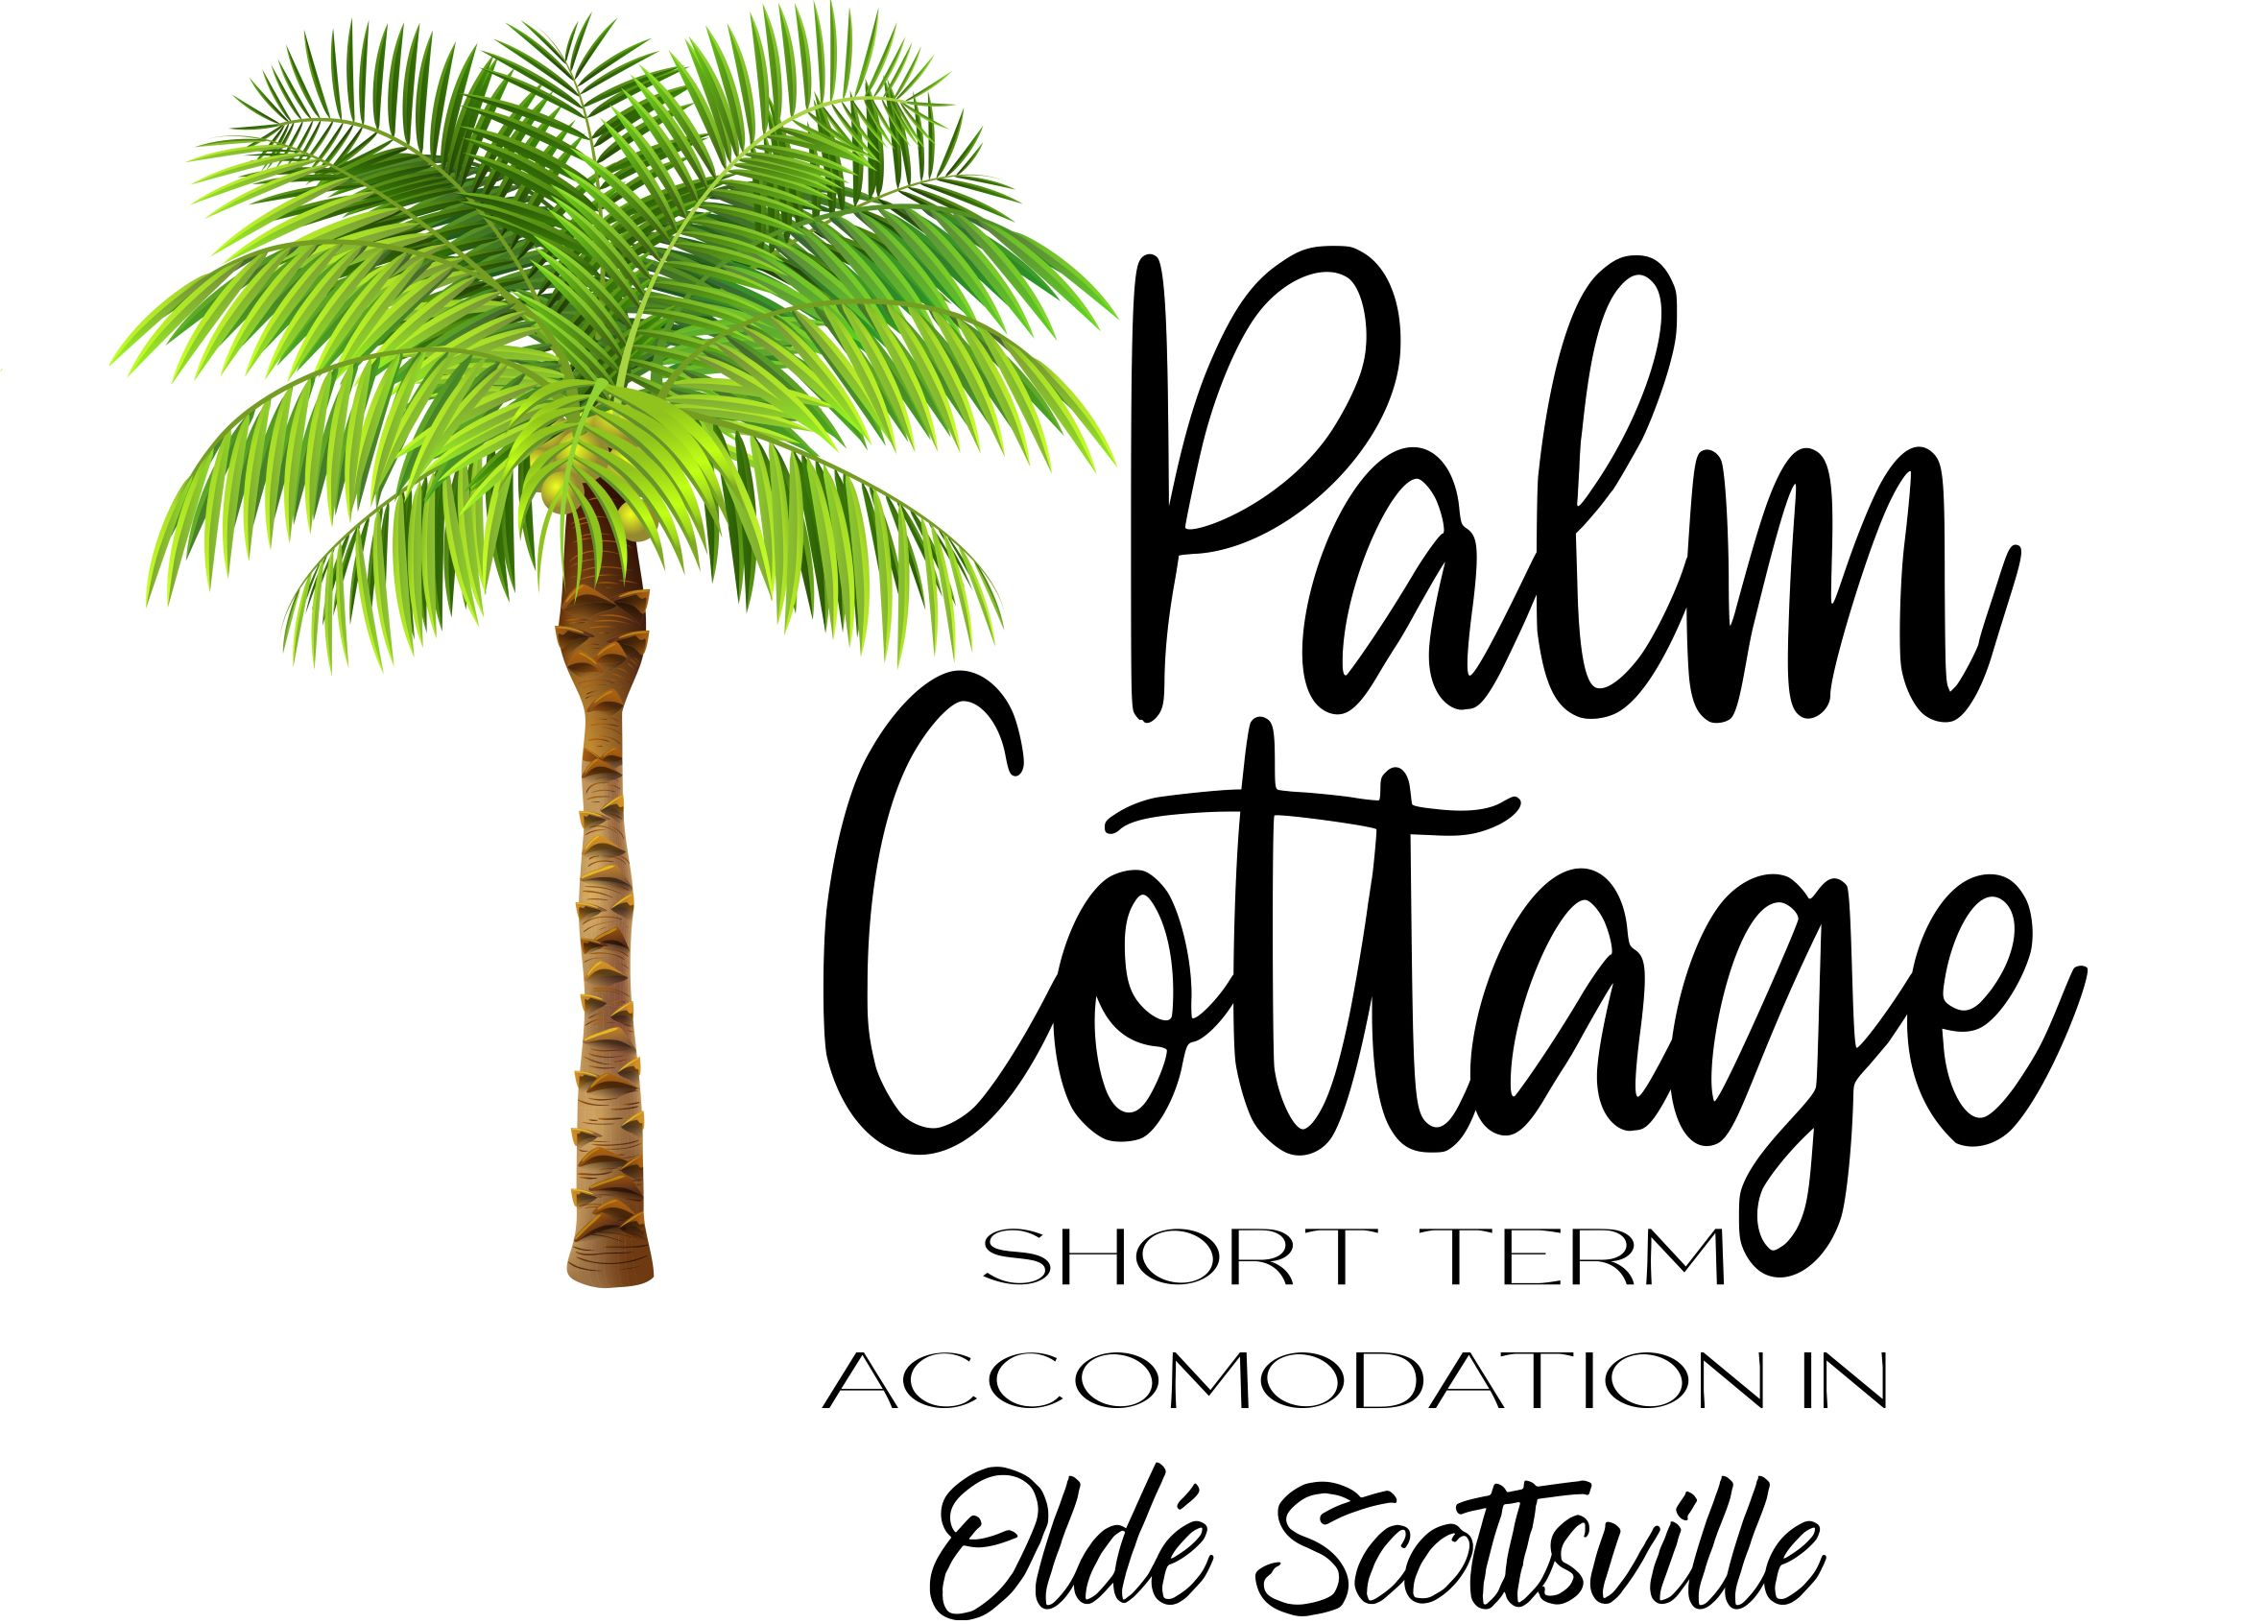 Friends of the College - Palm Cottage